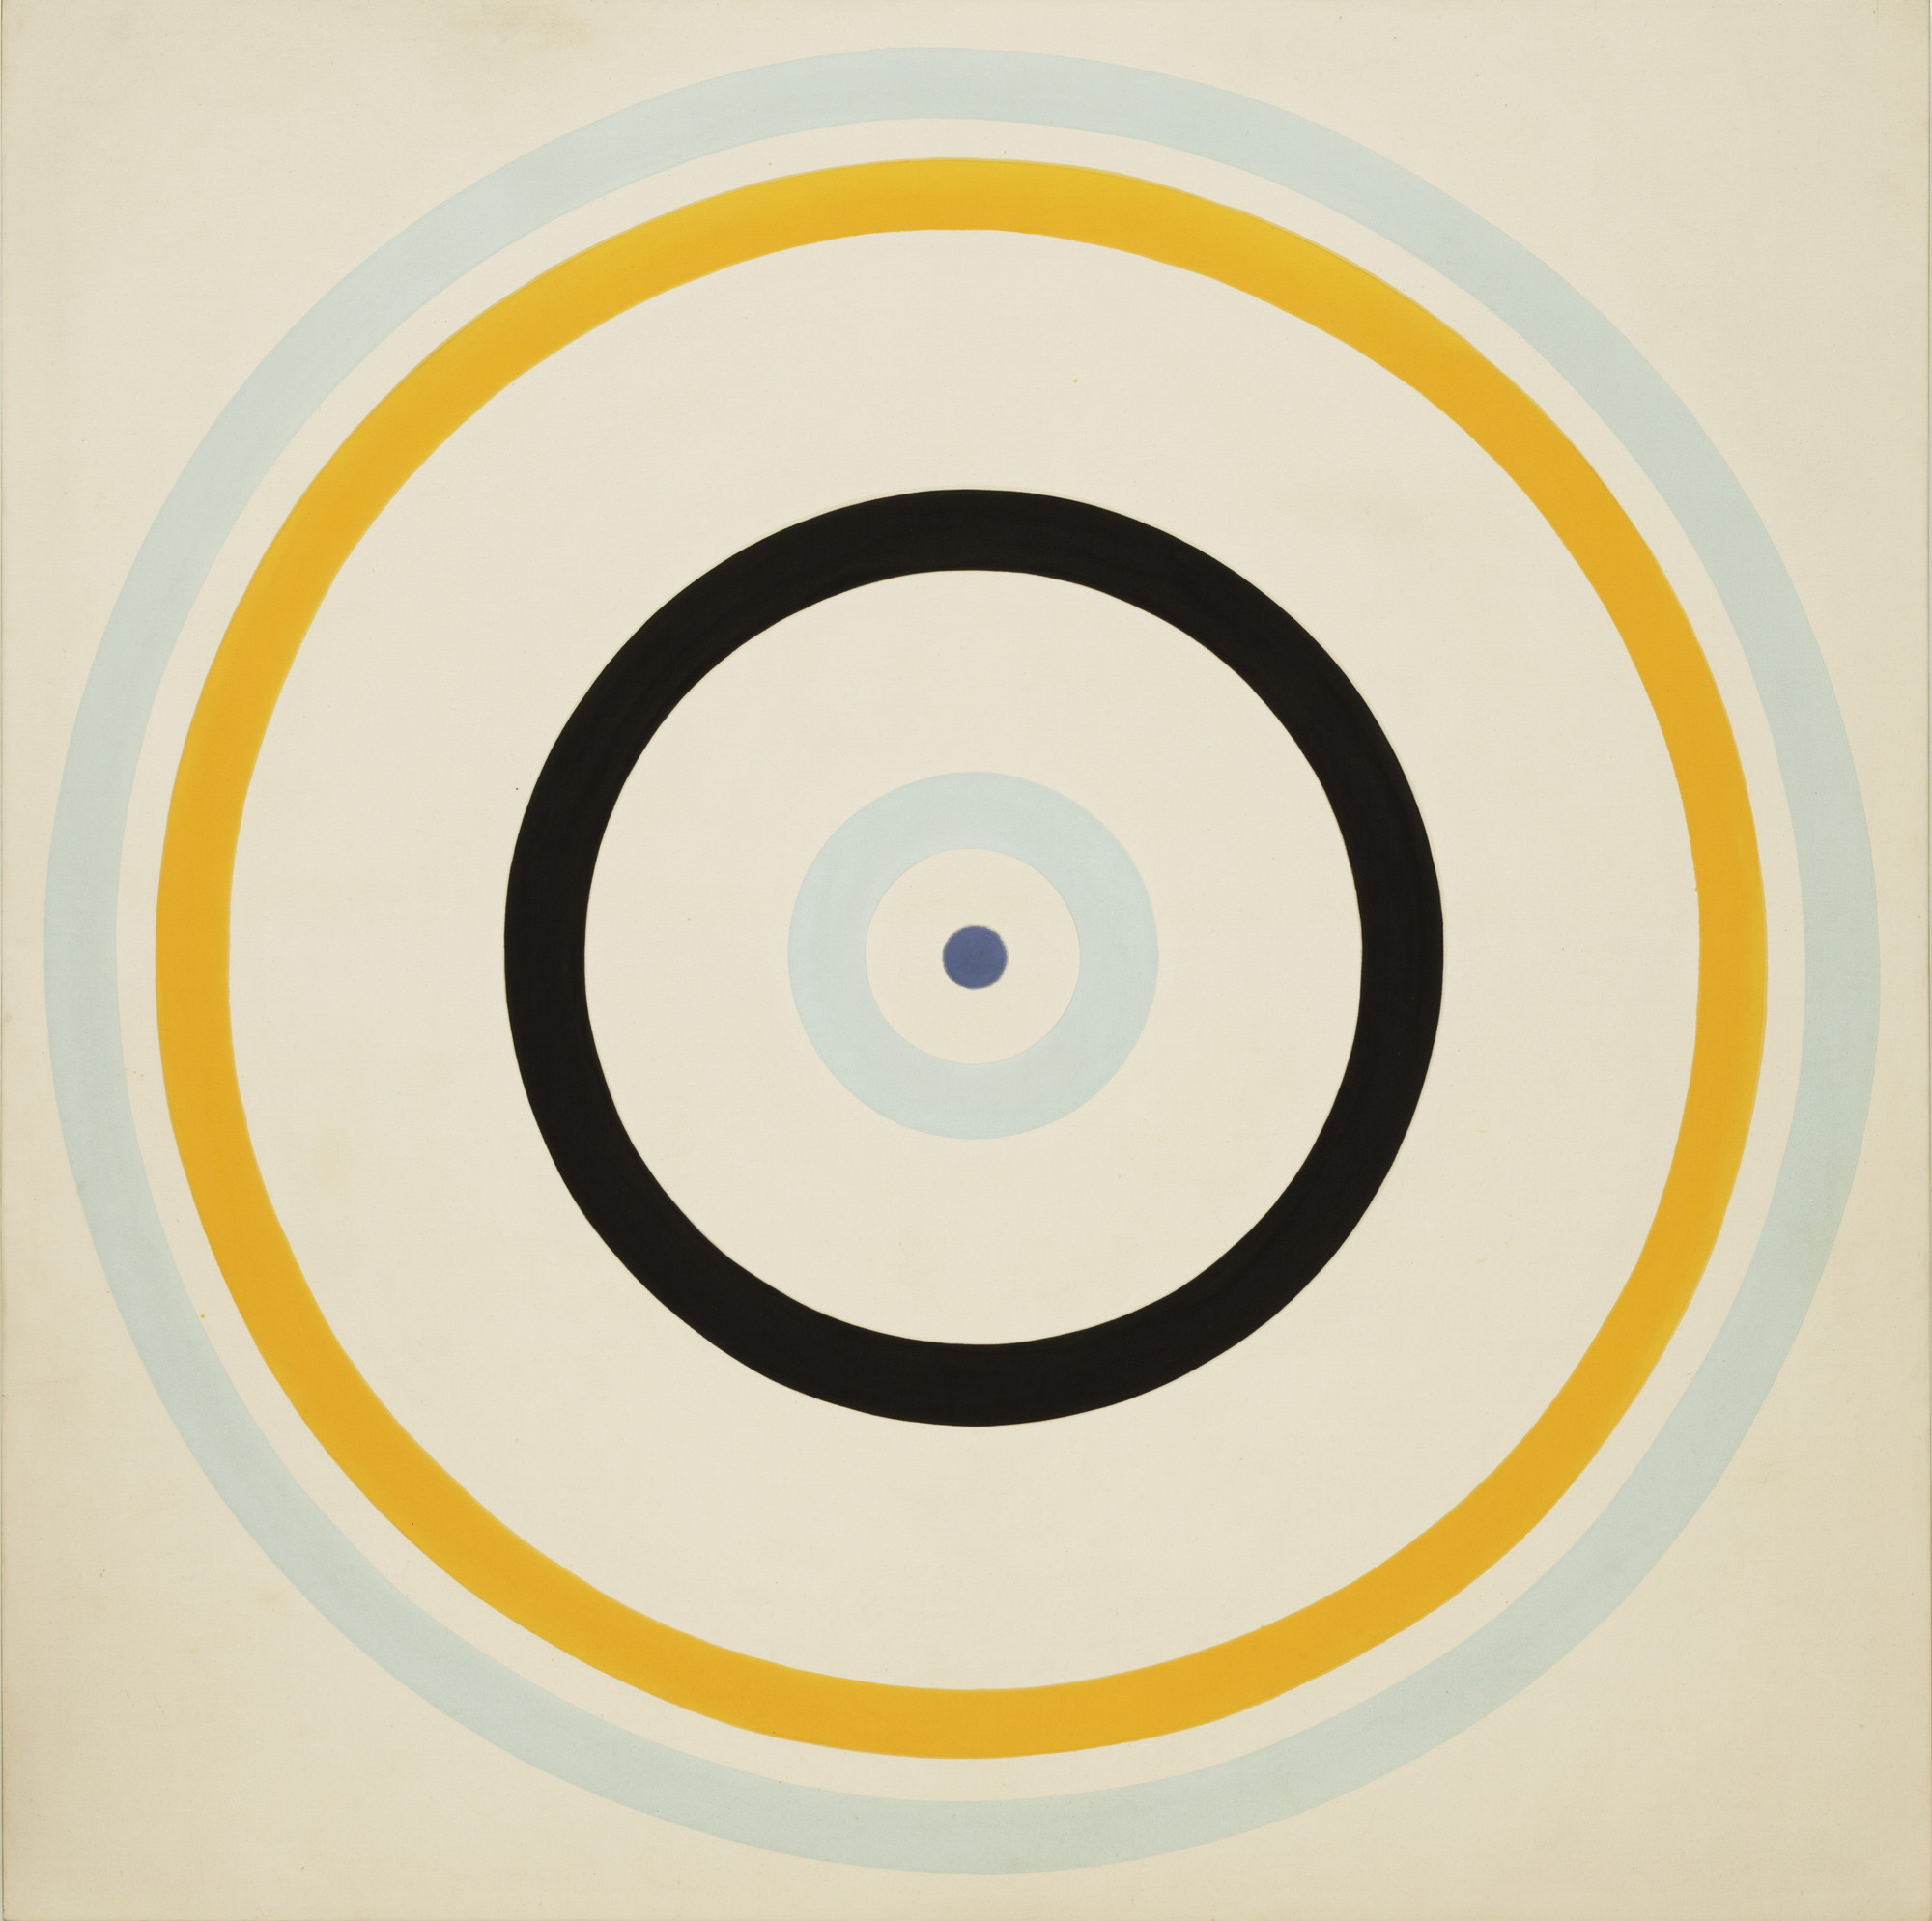 Kenneth Noland. Turnsole. 1961